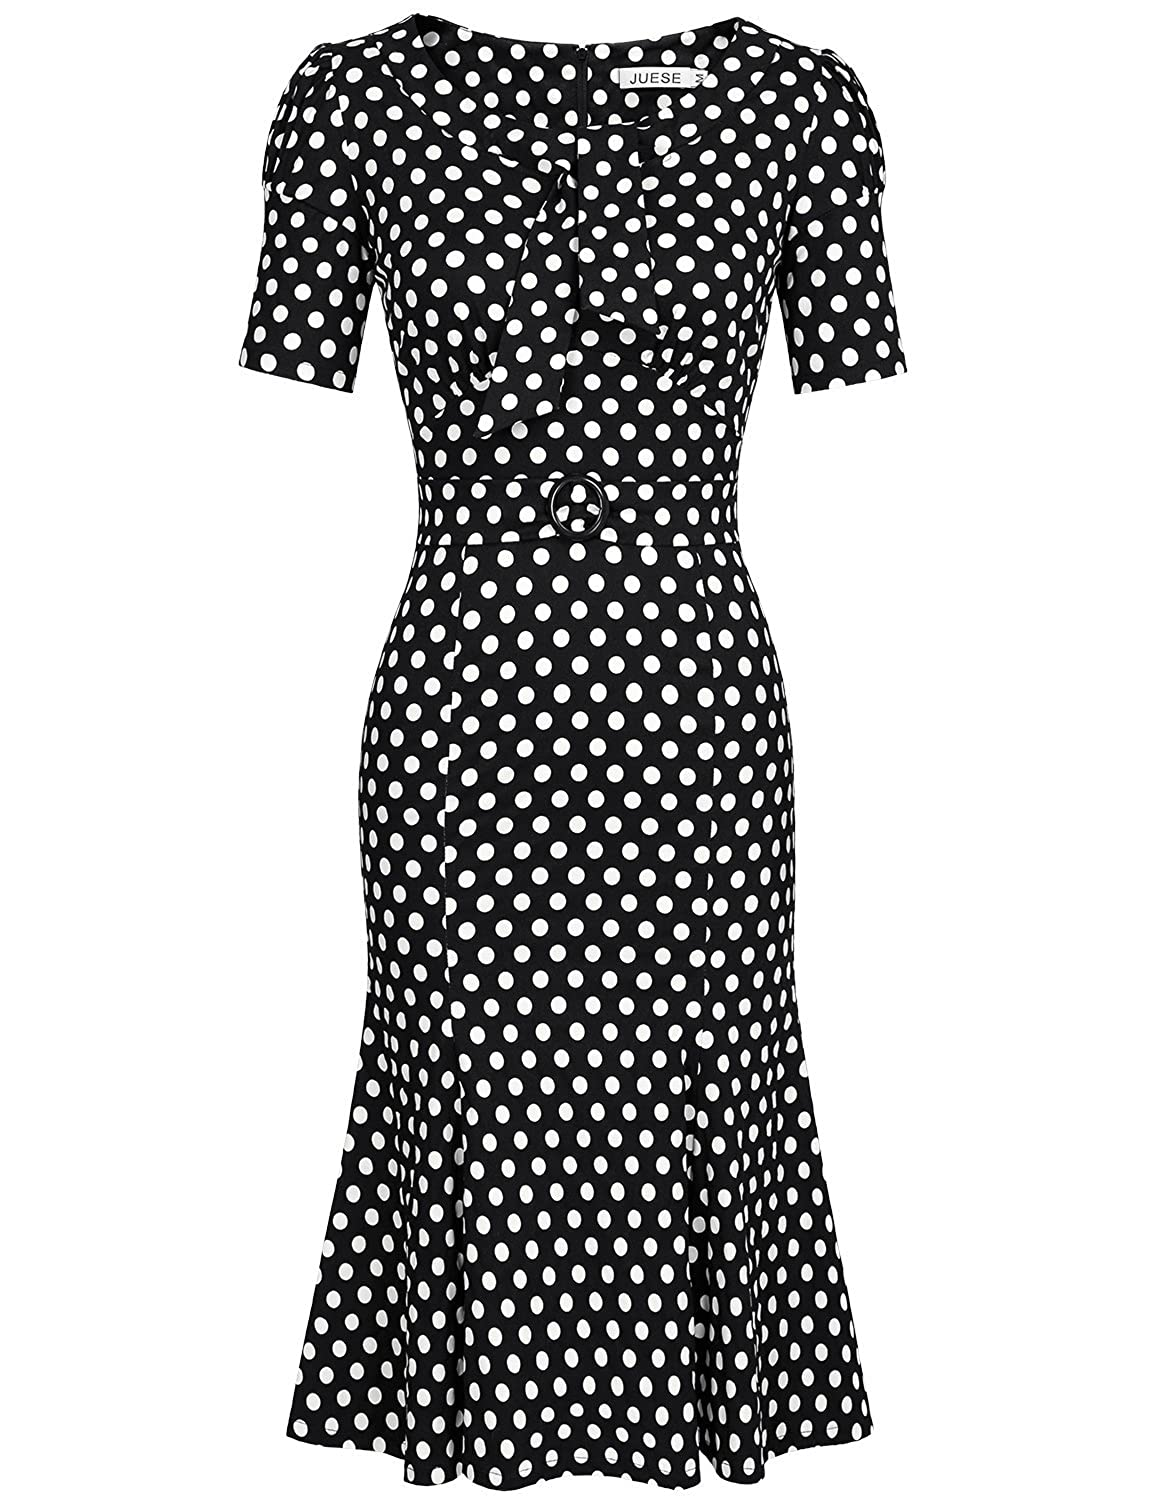 500 Vintage Style Dresses for Sale JUESE Womens 50s 60s Formal or Casual Party Pencil Dress $36.99 AT vintagedancer.com